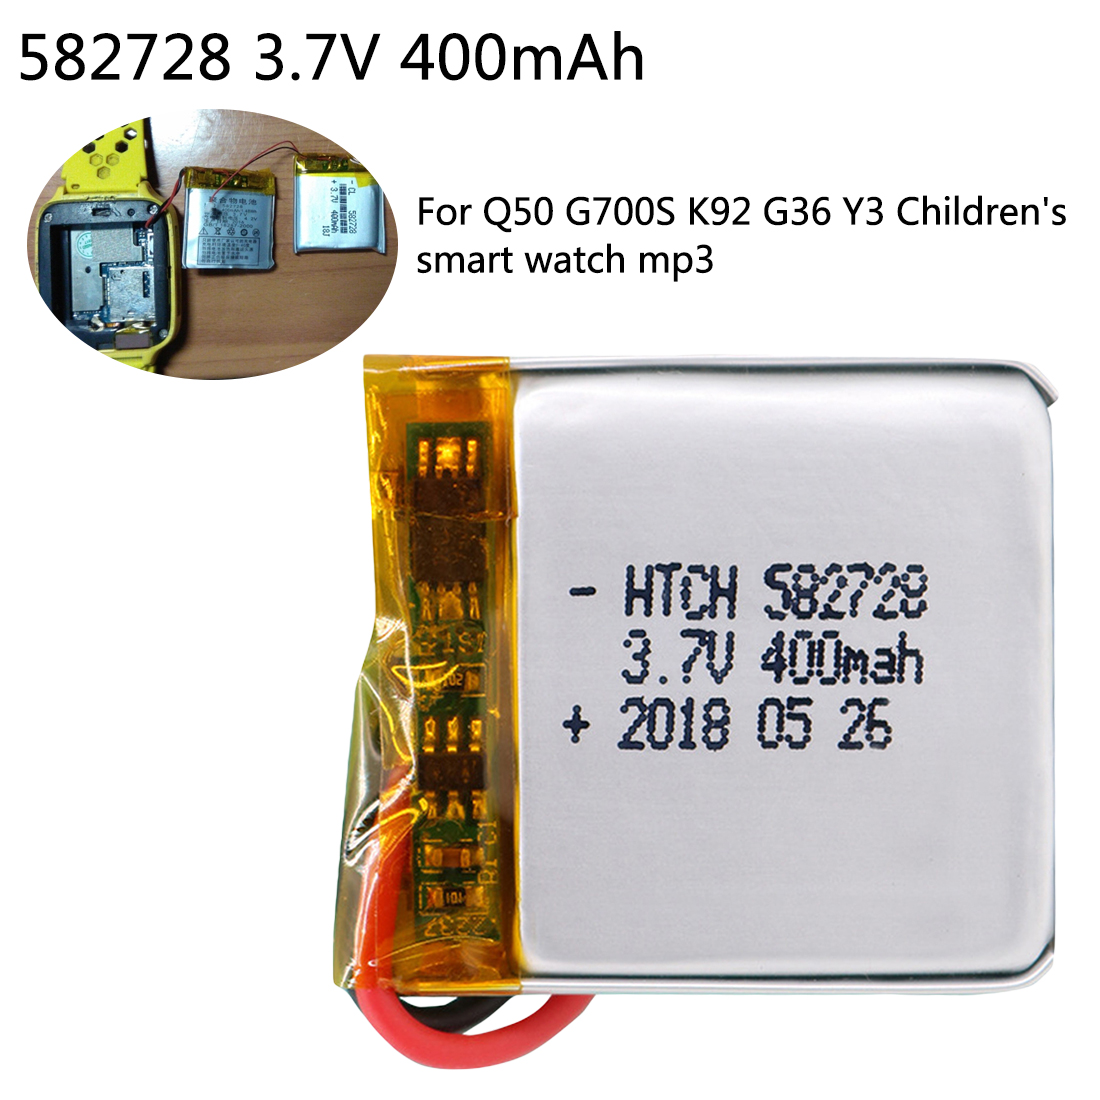 <font><b>400mAh</b></font> <font><b>3.7V</b></font> 582728 Rechargeable li-Polymer Li-ion <font><b>Battery</b></font> For Q50 G700S K92 G36 Y3 Children's Smart Watch MP3 Bluetooth Headset image